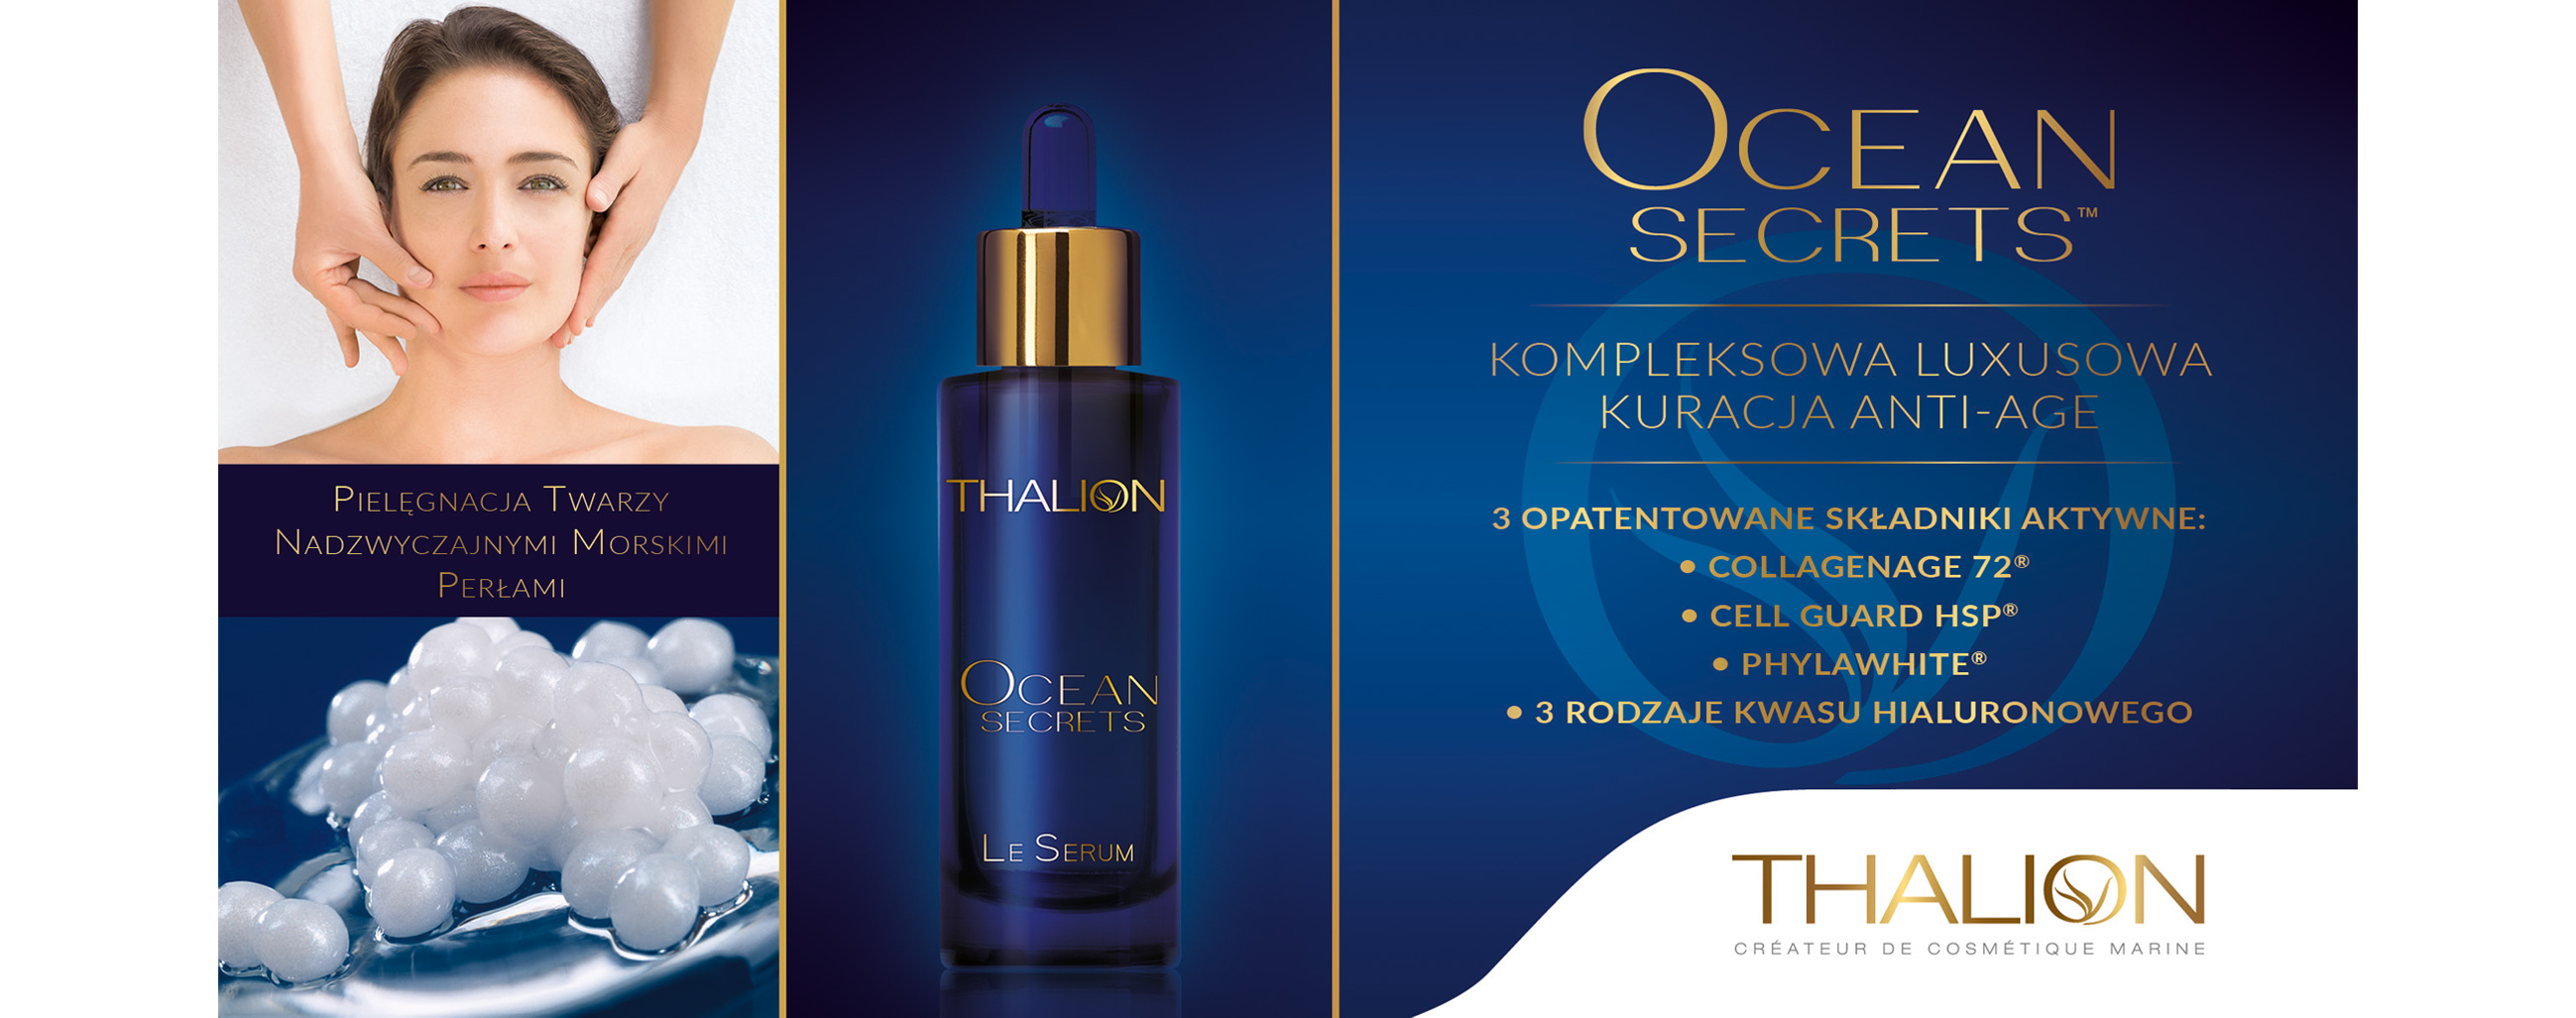 CEAN SECRETS PROFESSIONAL SET LUXURY ANTI-AGE